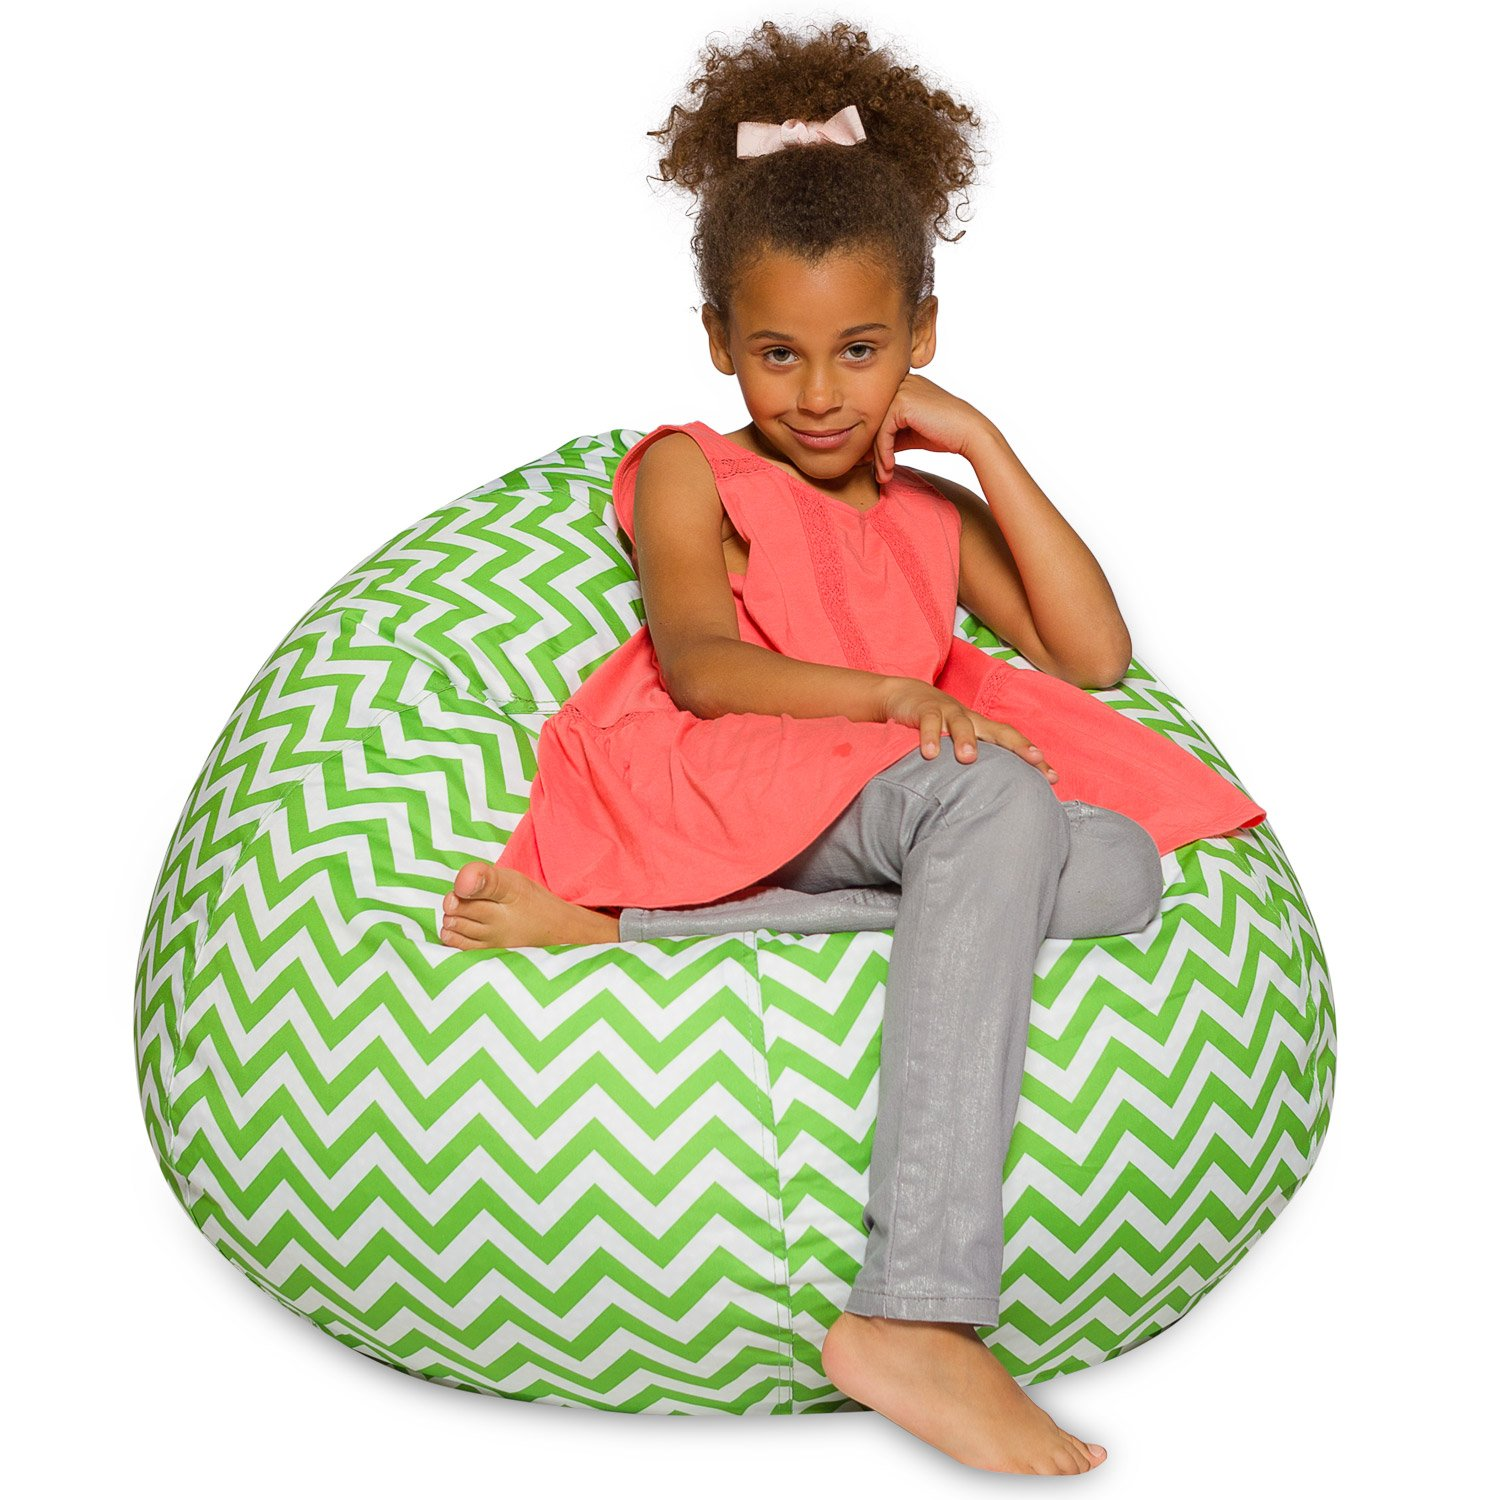 Big Comfy Bean Bag Chair: Posh Large Beanbag Chairs for Kids, Teens and Adults - Polyester Cloth Puff Sack Lounger Furniture for All Ages - 27 Inch - Chevron Green and White by Posh Beanbags (Image #1)